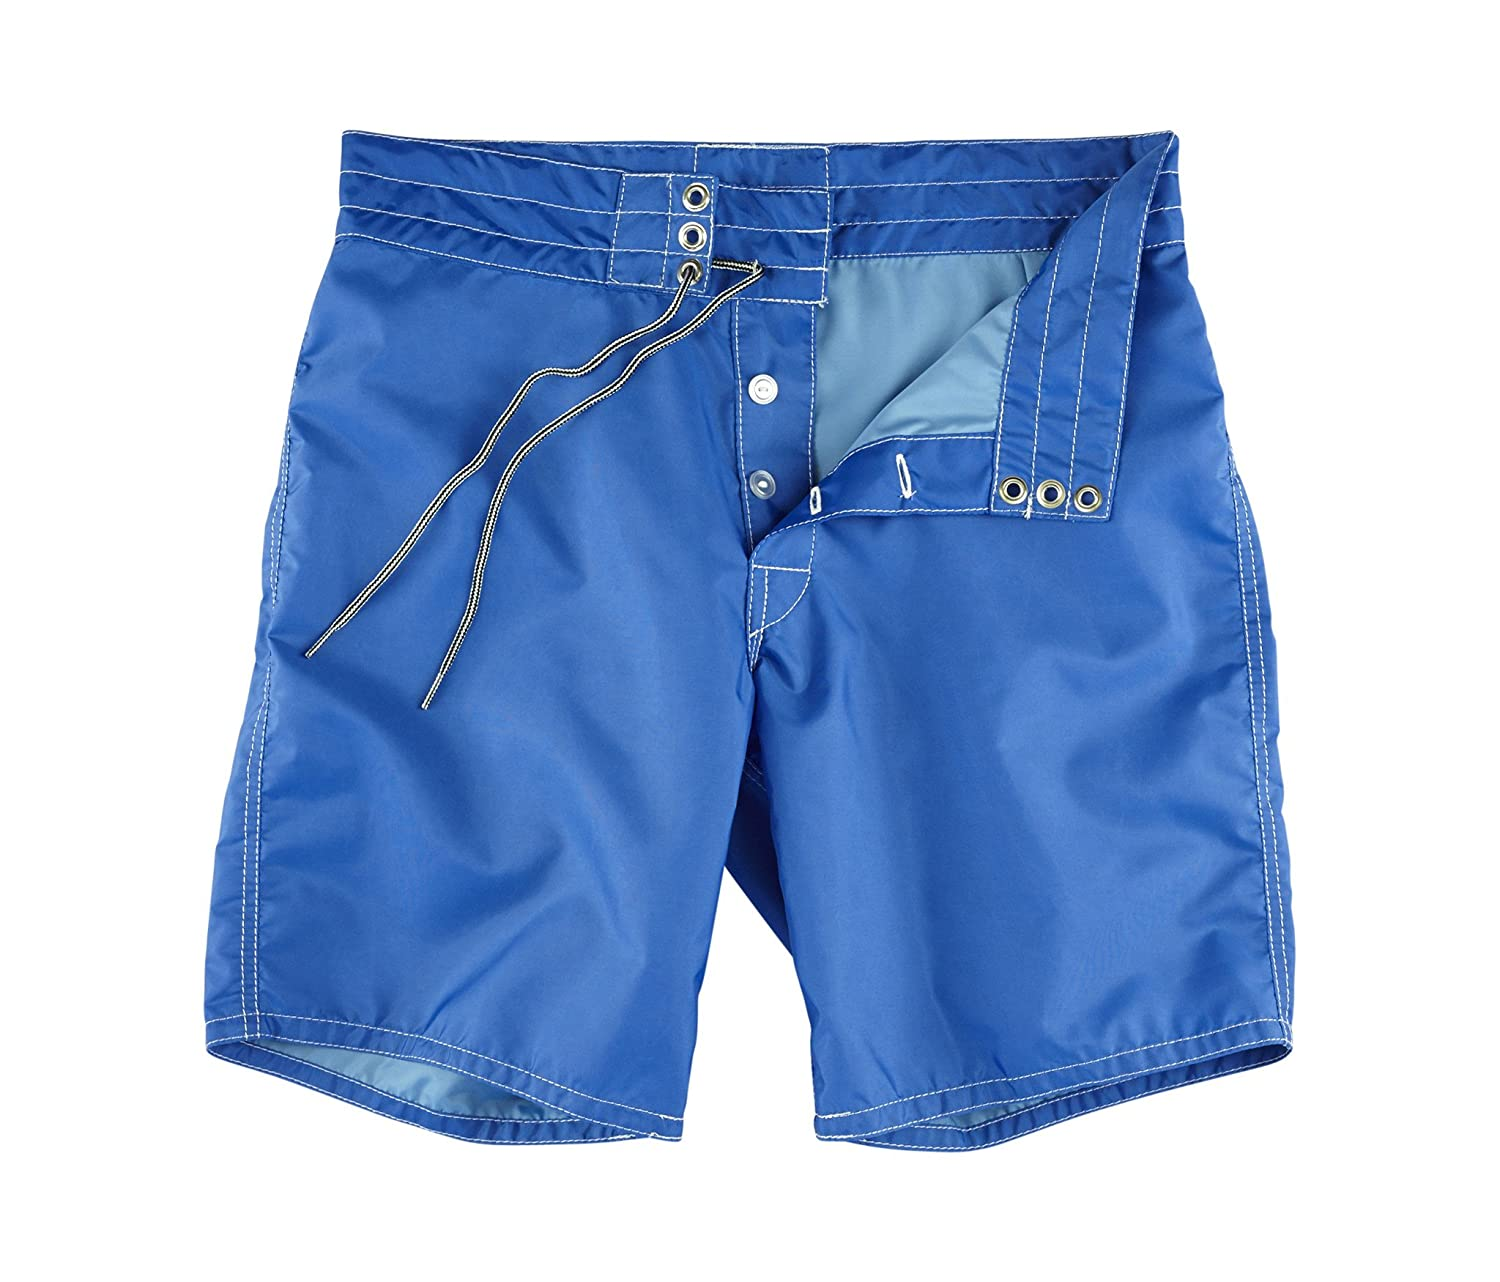 3621761539 Birdwell Men's Board Shorts - Medium Length | Amazon.com